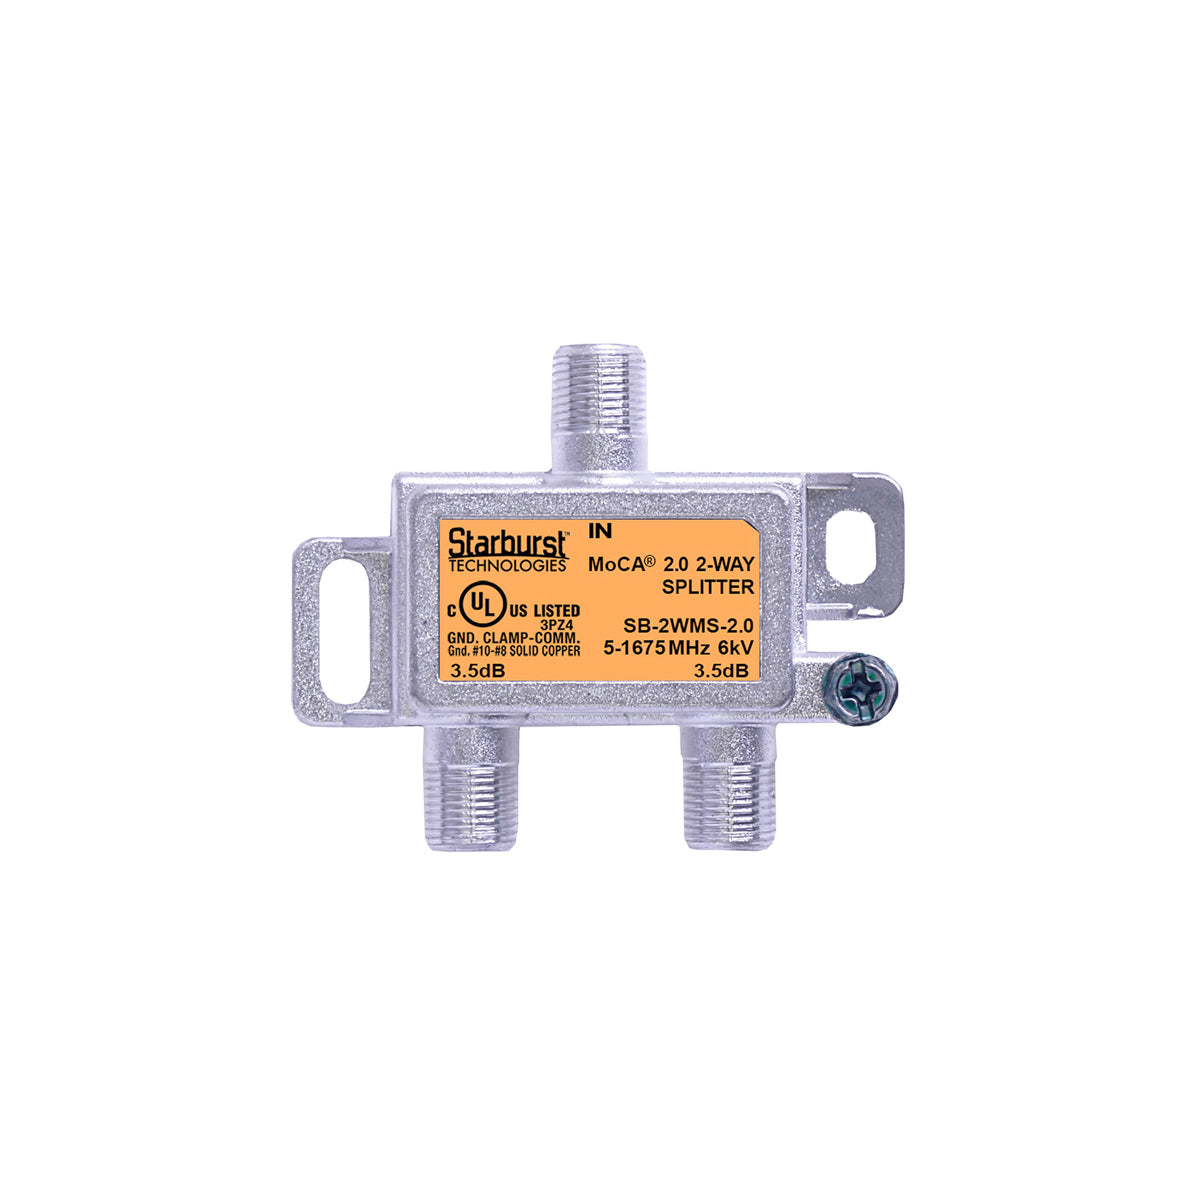 SB-2WMS-2.0 - 2 Way Horizontal Coaxial Cable Splitter, 6Kv Rated, 1GHz, MoCA 2.0, HPNA and DOCSIS 3.1 Compatible, 5-1675 MHz Wide Band For Ethernet Over Coax Universal Home Networking